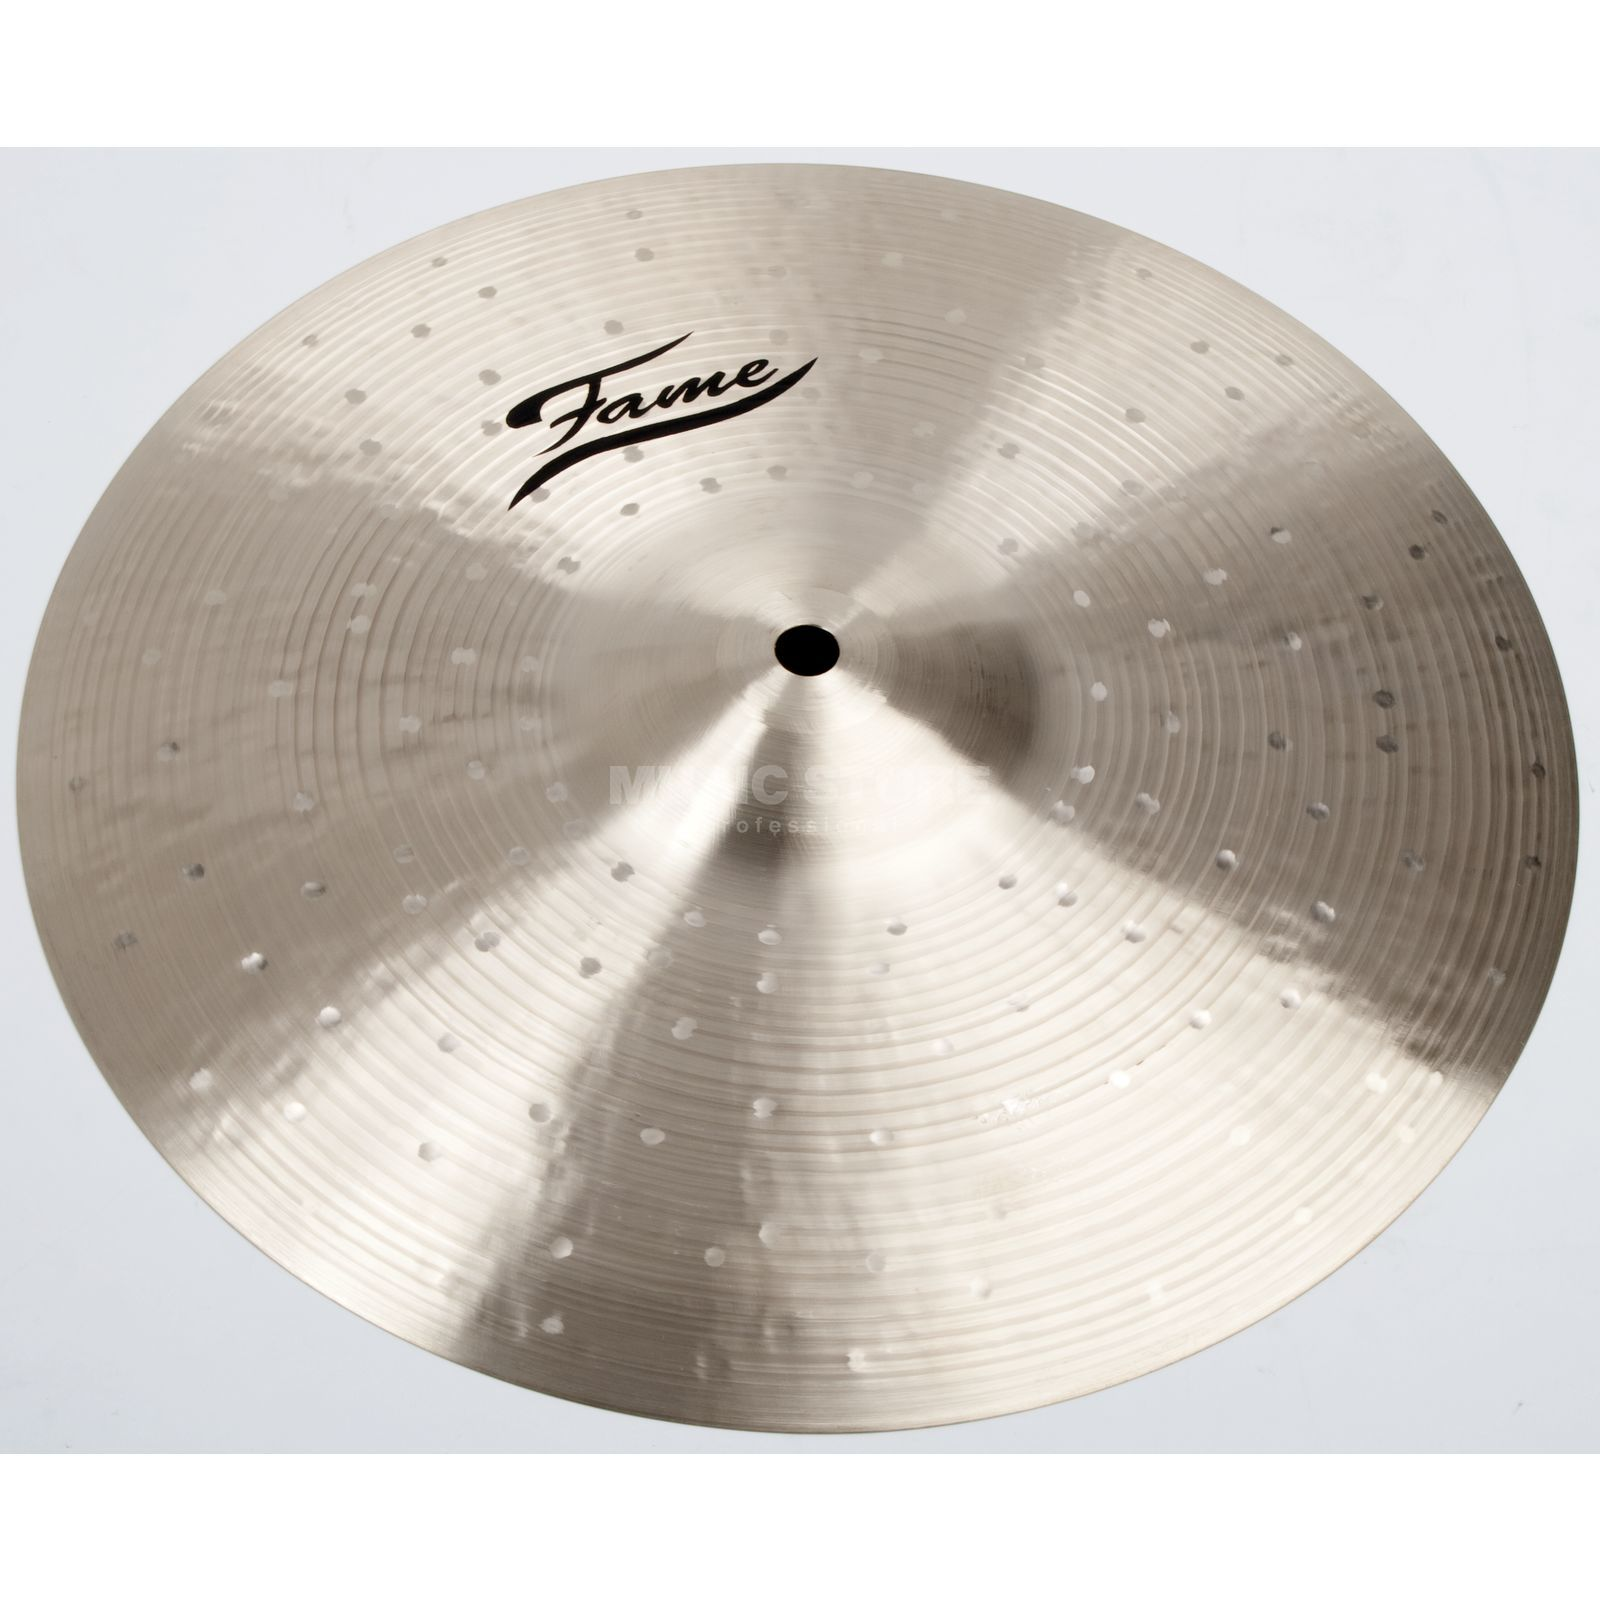 "Fame Masters B20 Splash 12"" Natural Finish Productafbeelding"